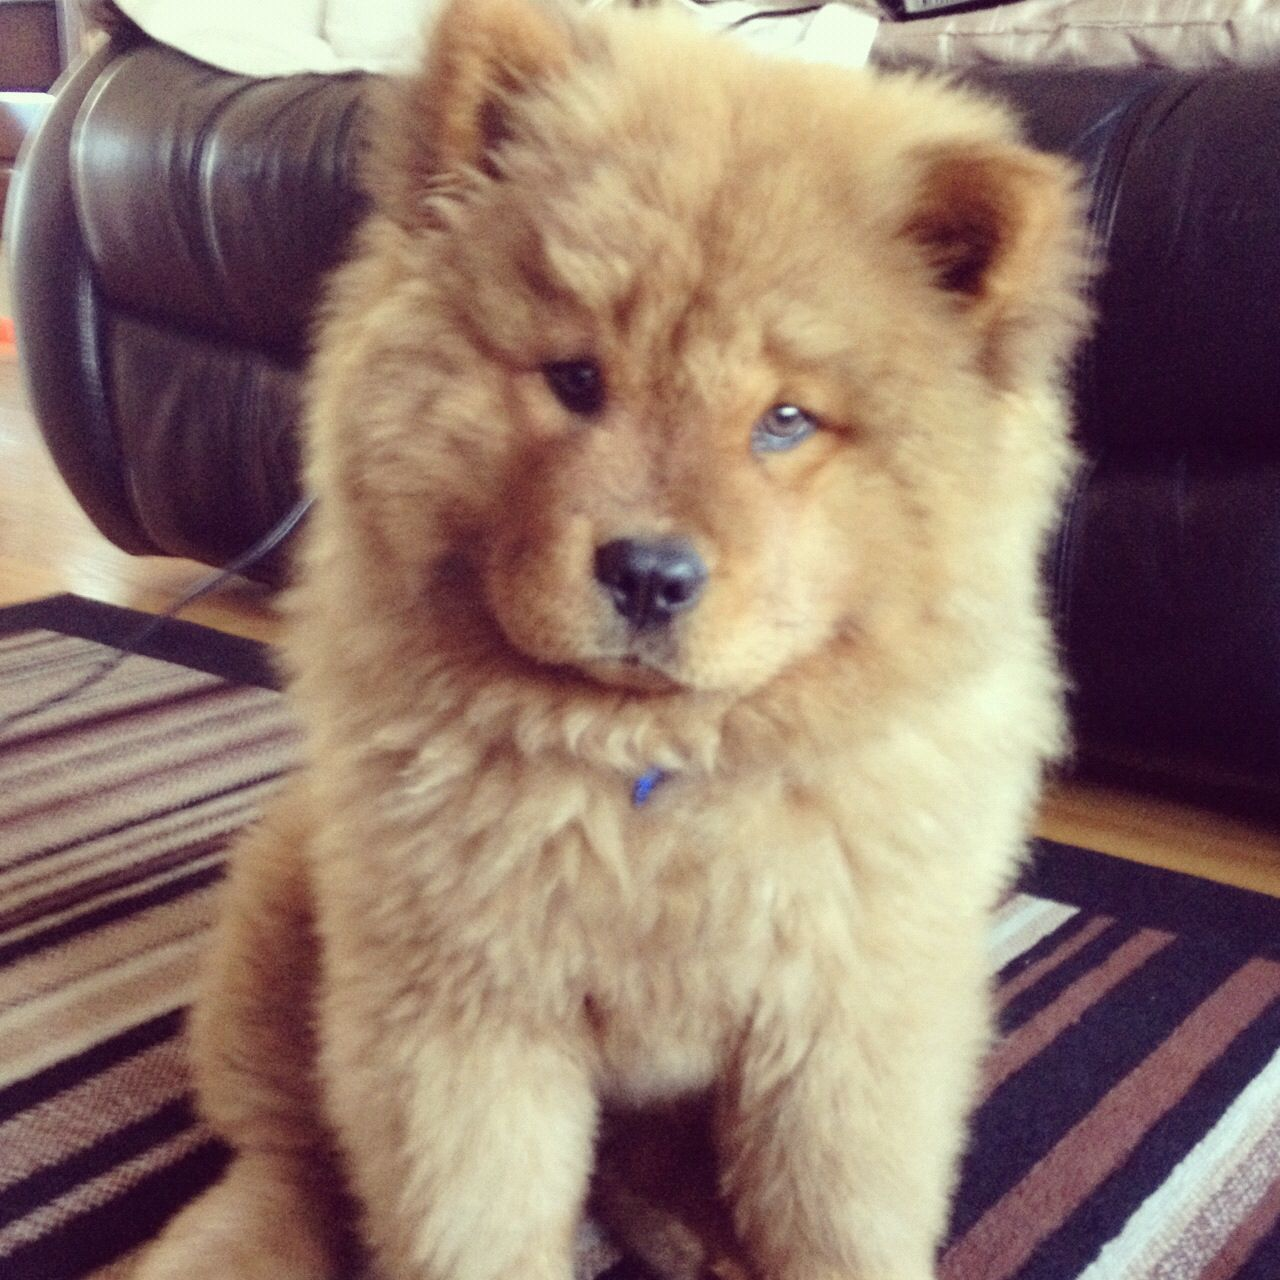 I Want A Chow Chow Puppy Sooooo Bad And My Mom Sayd No Bc They